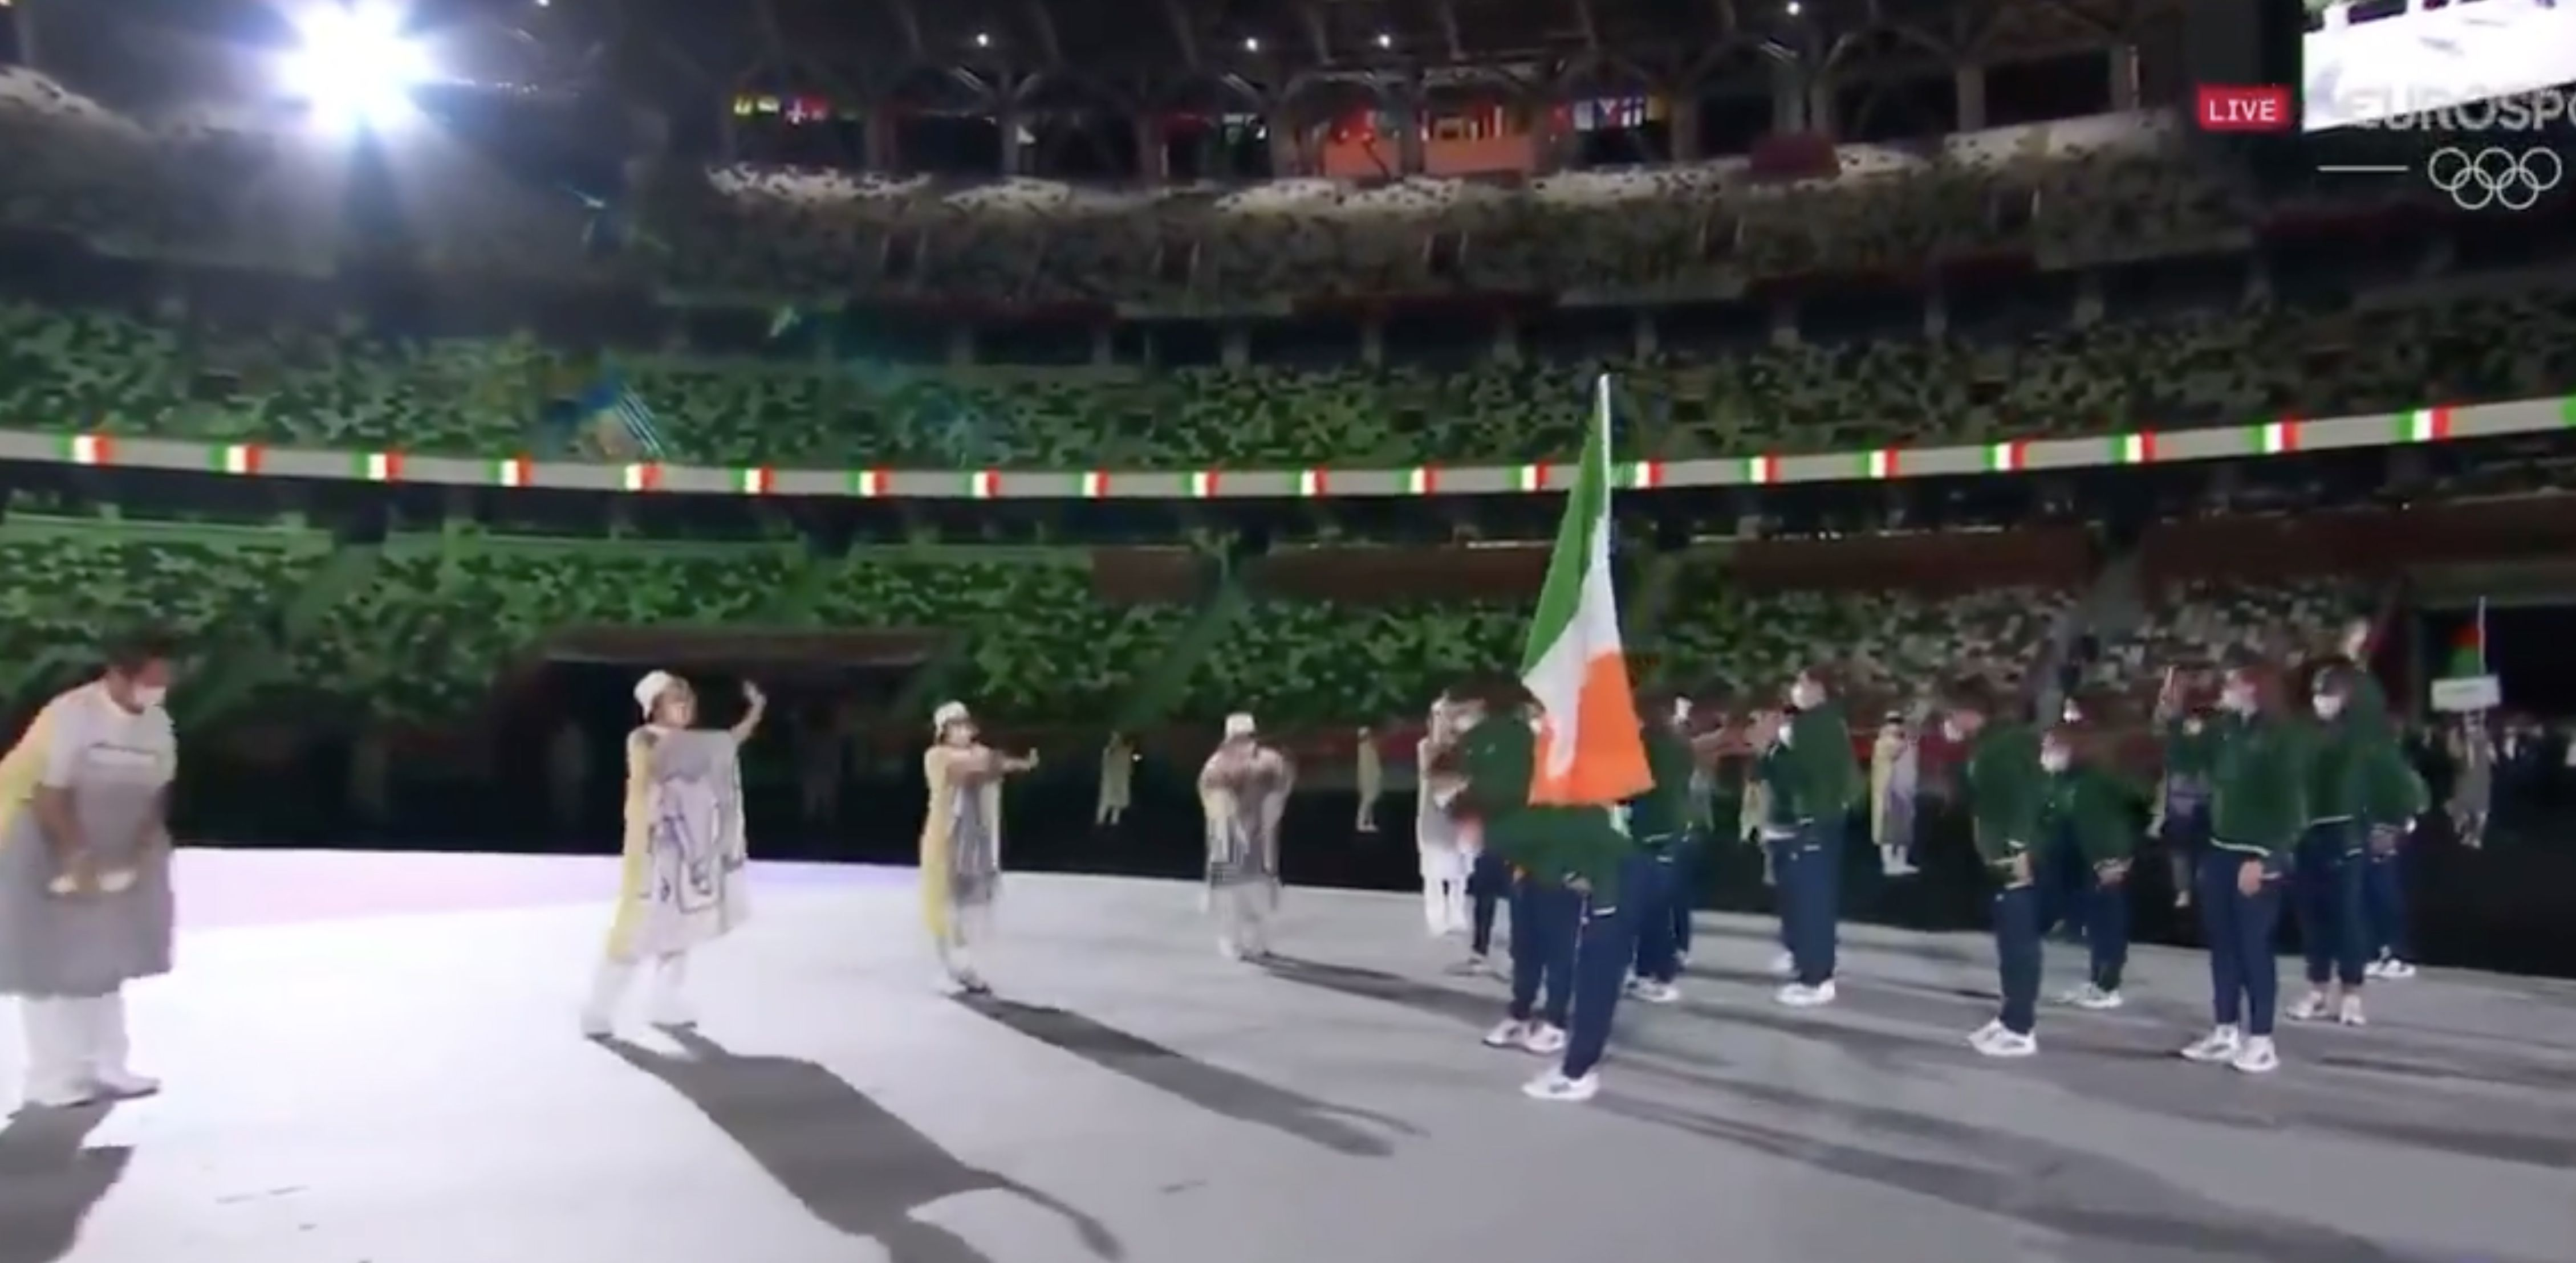 RESPECT:Kellie Harrington, Brendan Irvine and colleagues bow to their hosts at the Olympic parade of nations on the opening day